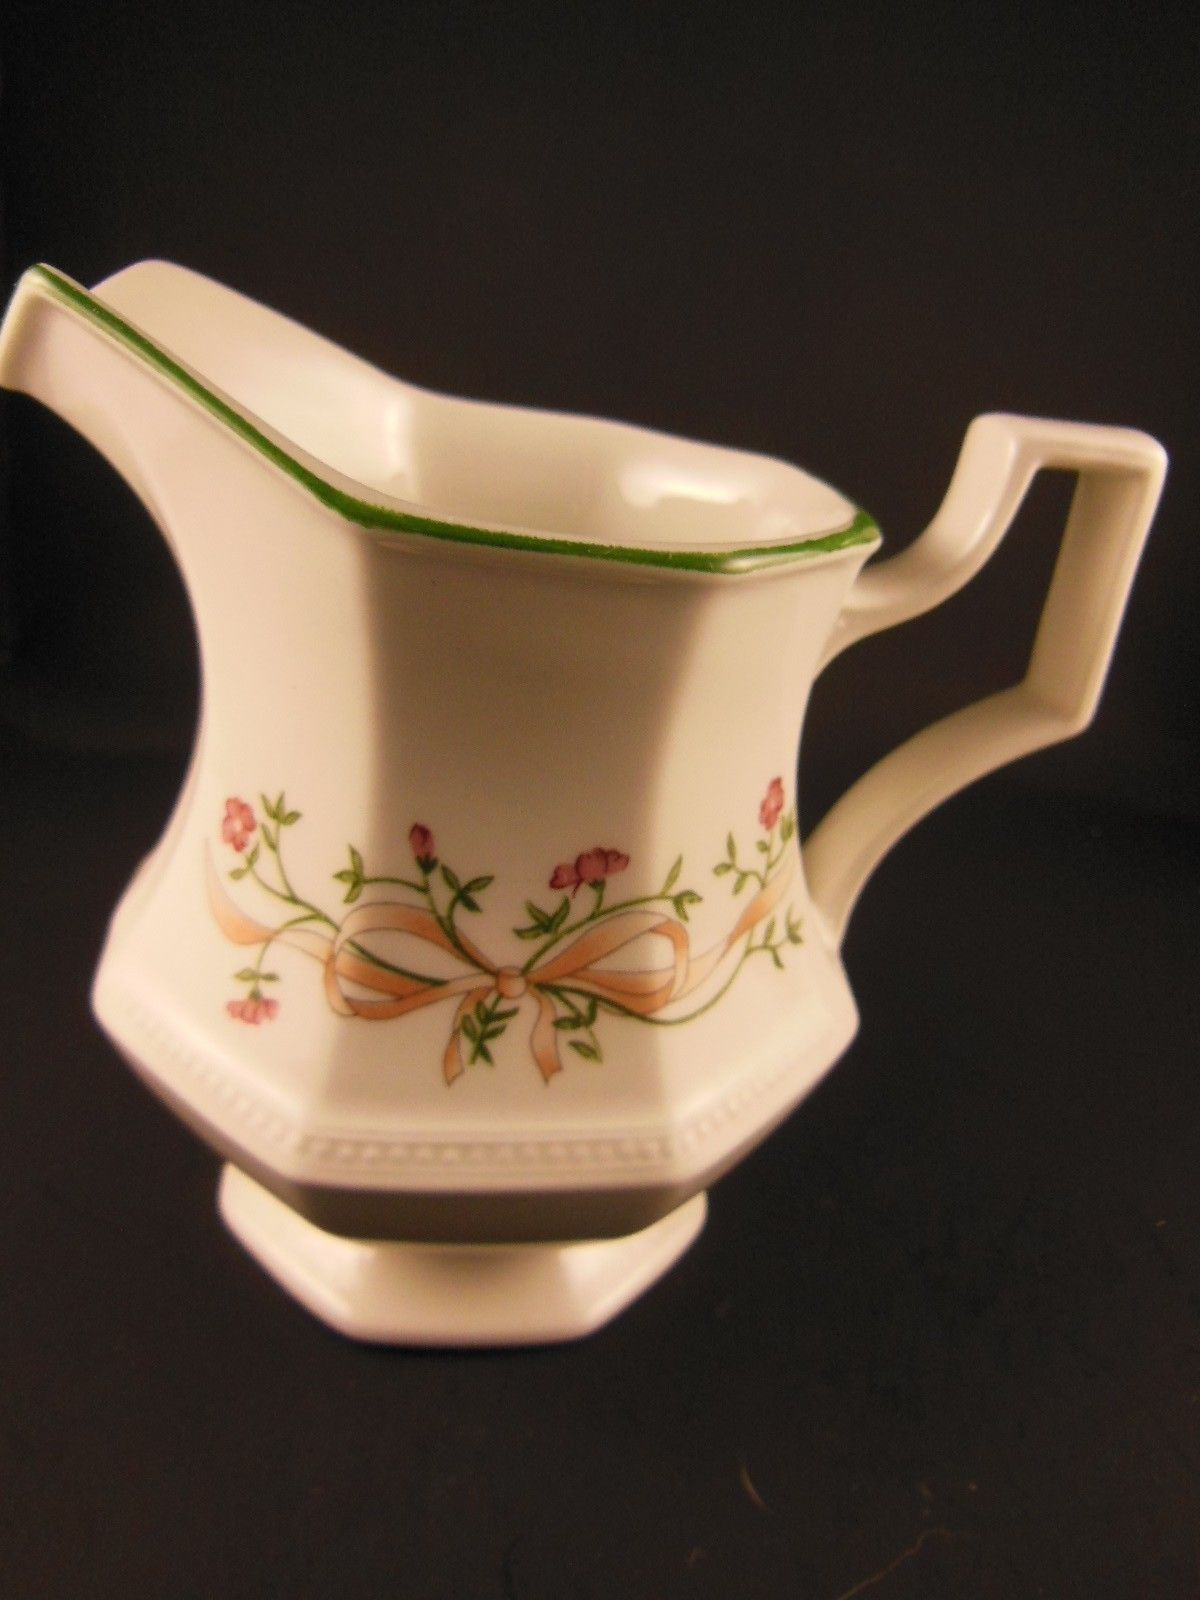 Primary image for English Creamer Eternal beau Bow Ribbon Johnson Brothers Made in England